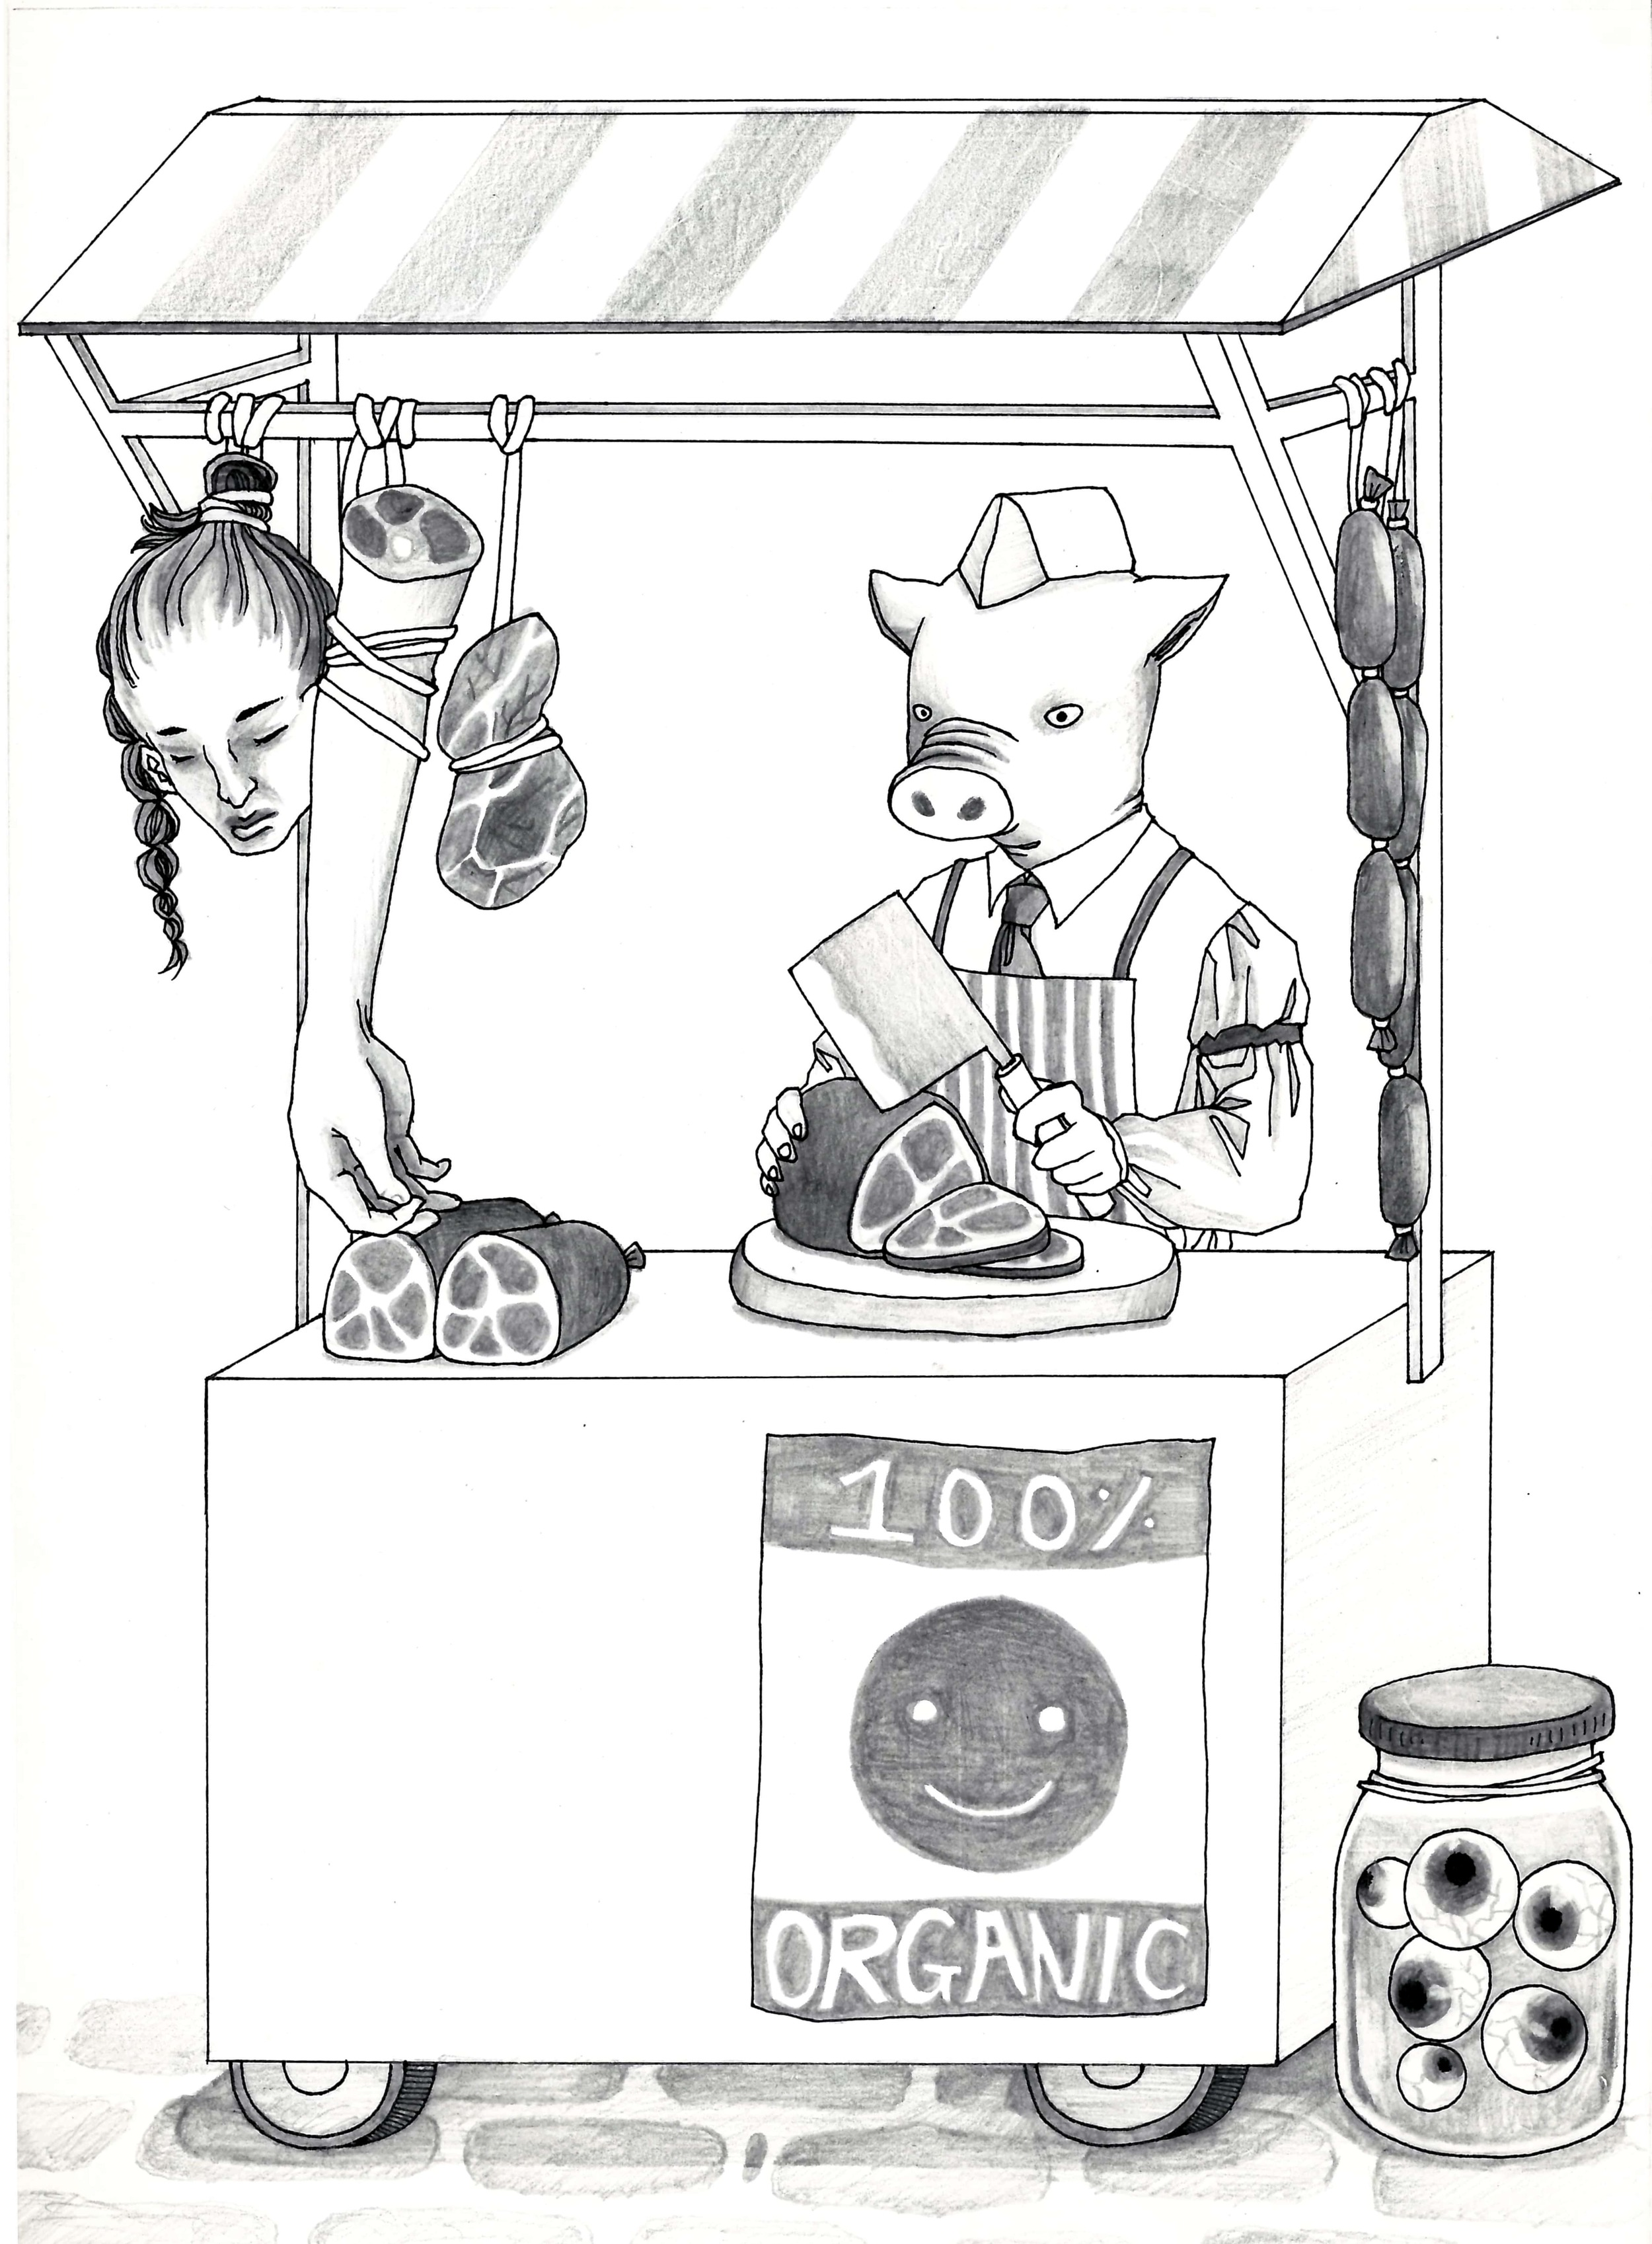 Welcome to the Butcher Shop